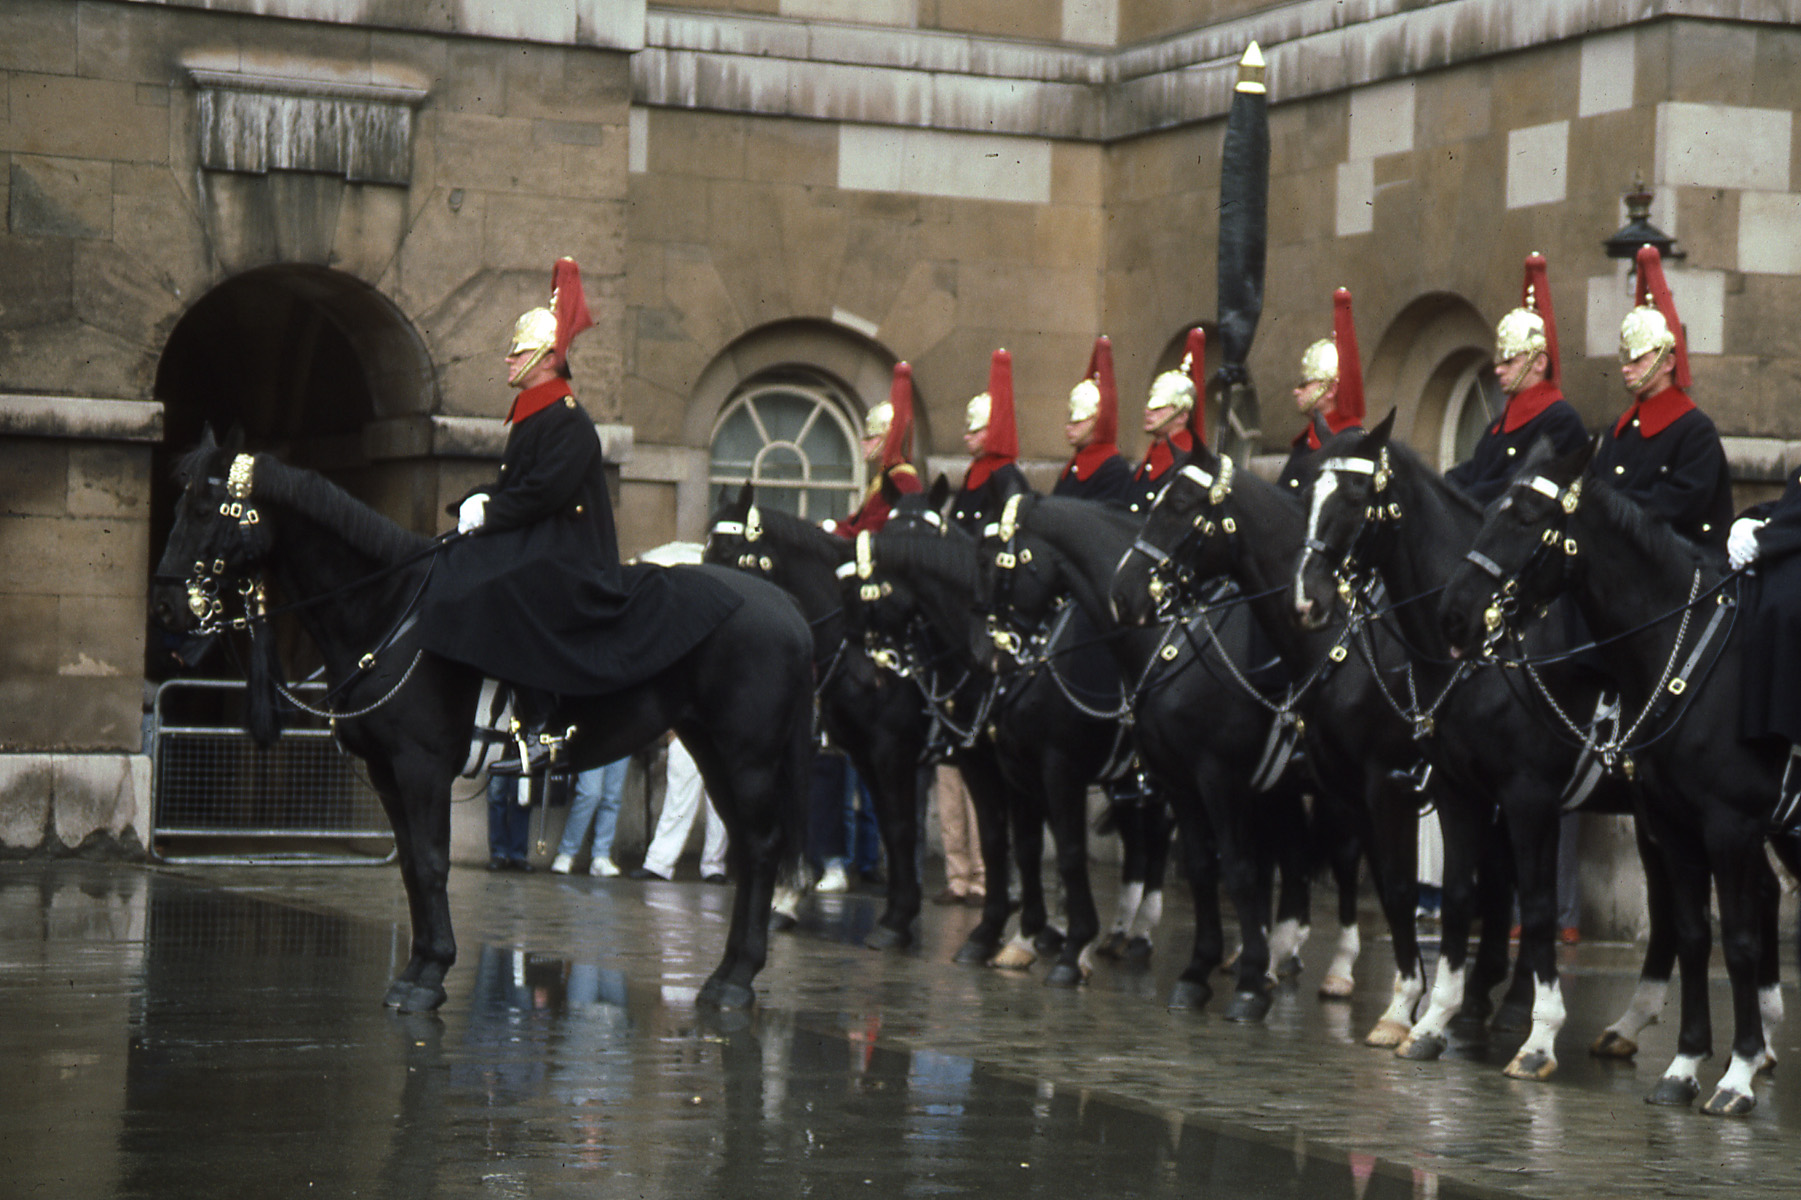 Manly Men wear their uniforms with pride and purpose, Manly horses too. London 1989- challen